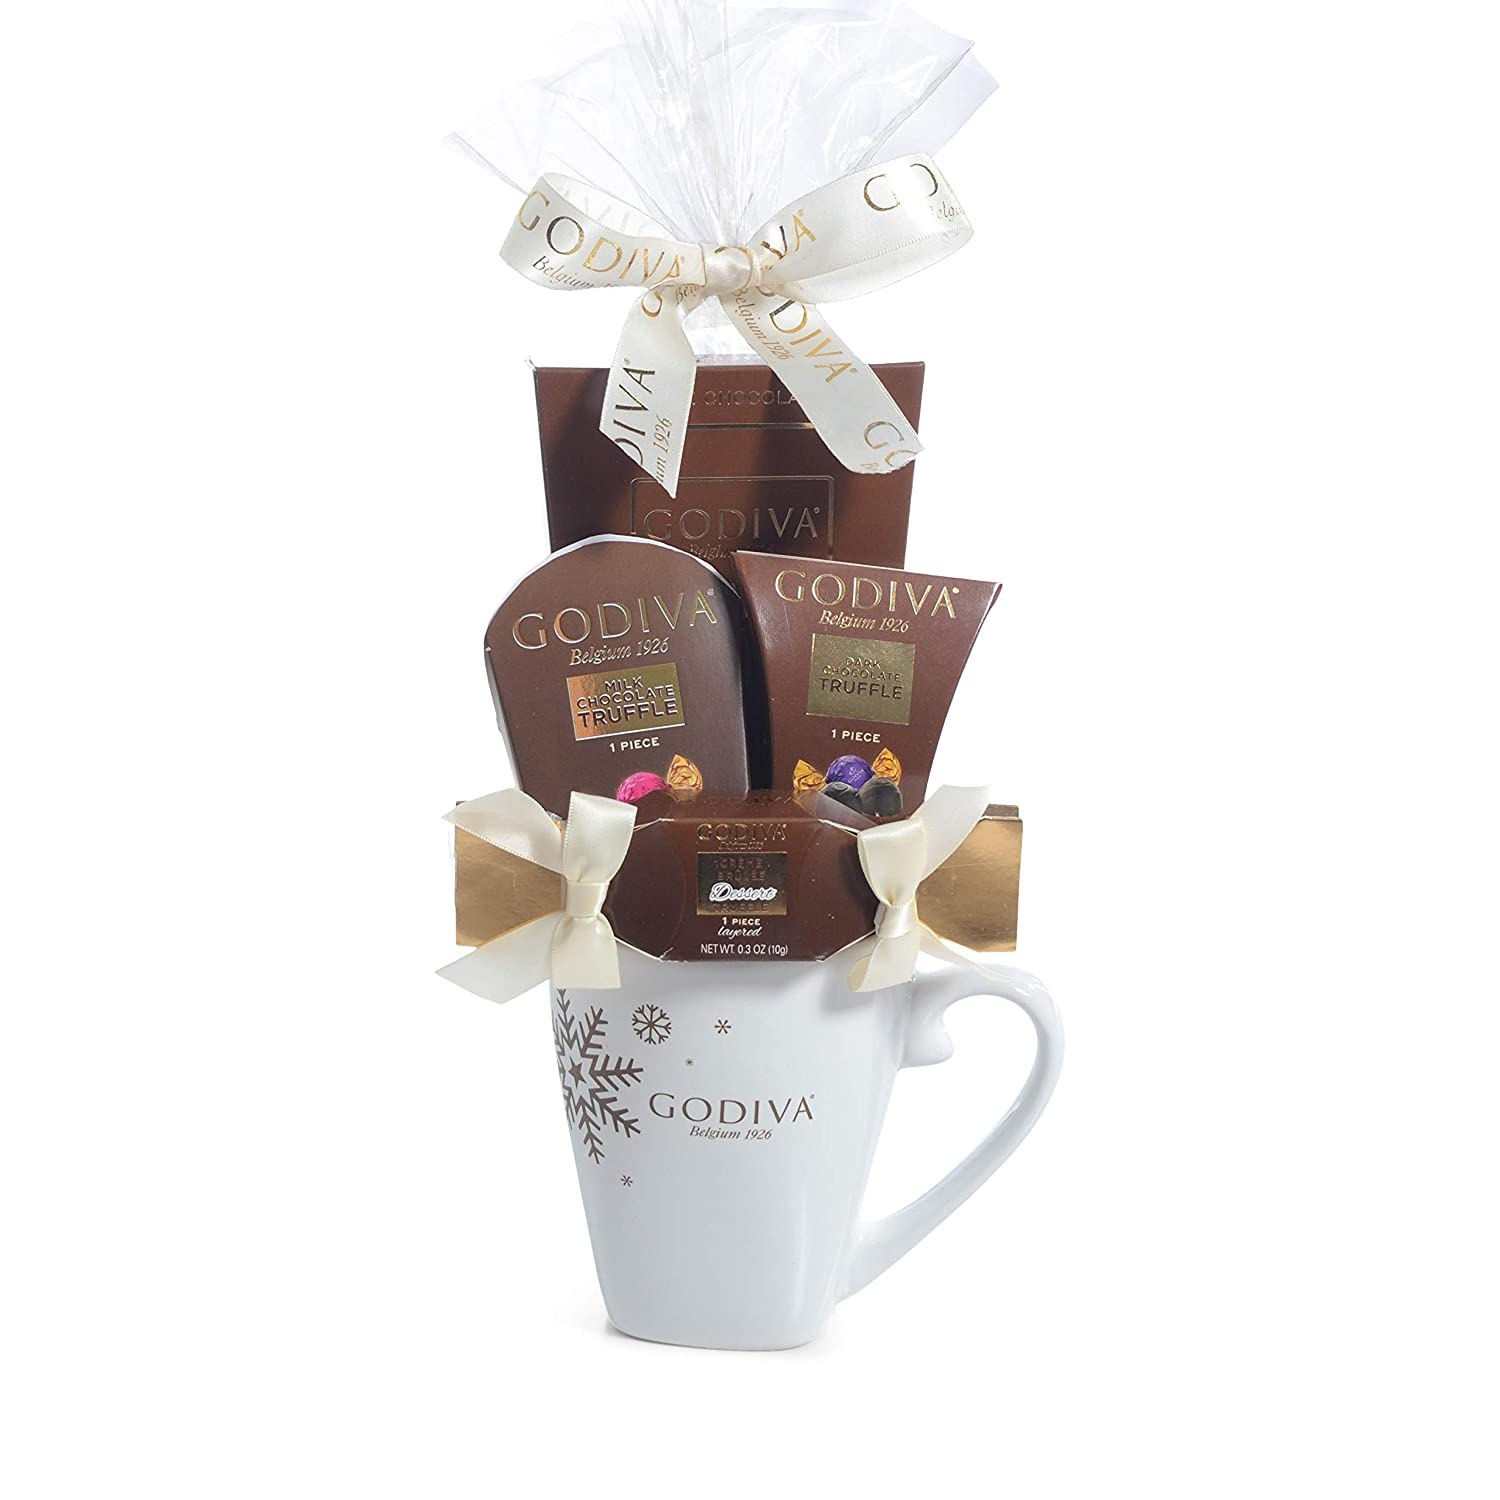 Christmas Gift Sets 2019.Milliard Godiva Mug Chocolate Gift Set 2019 Christmas New Years Holiday Season With Product Protective Packaging